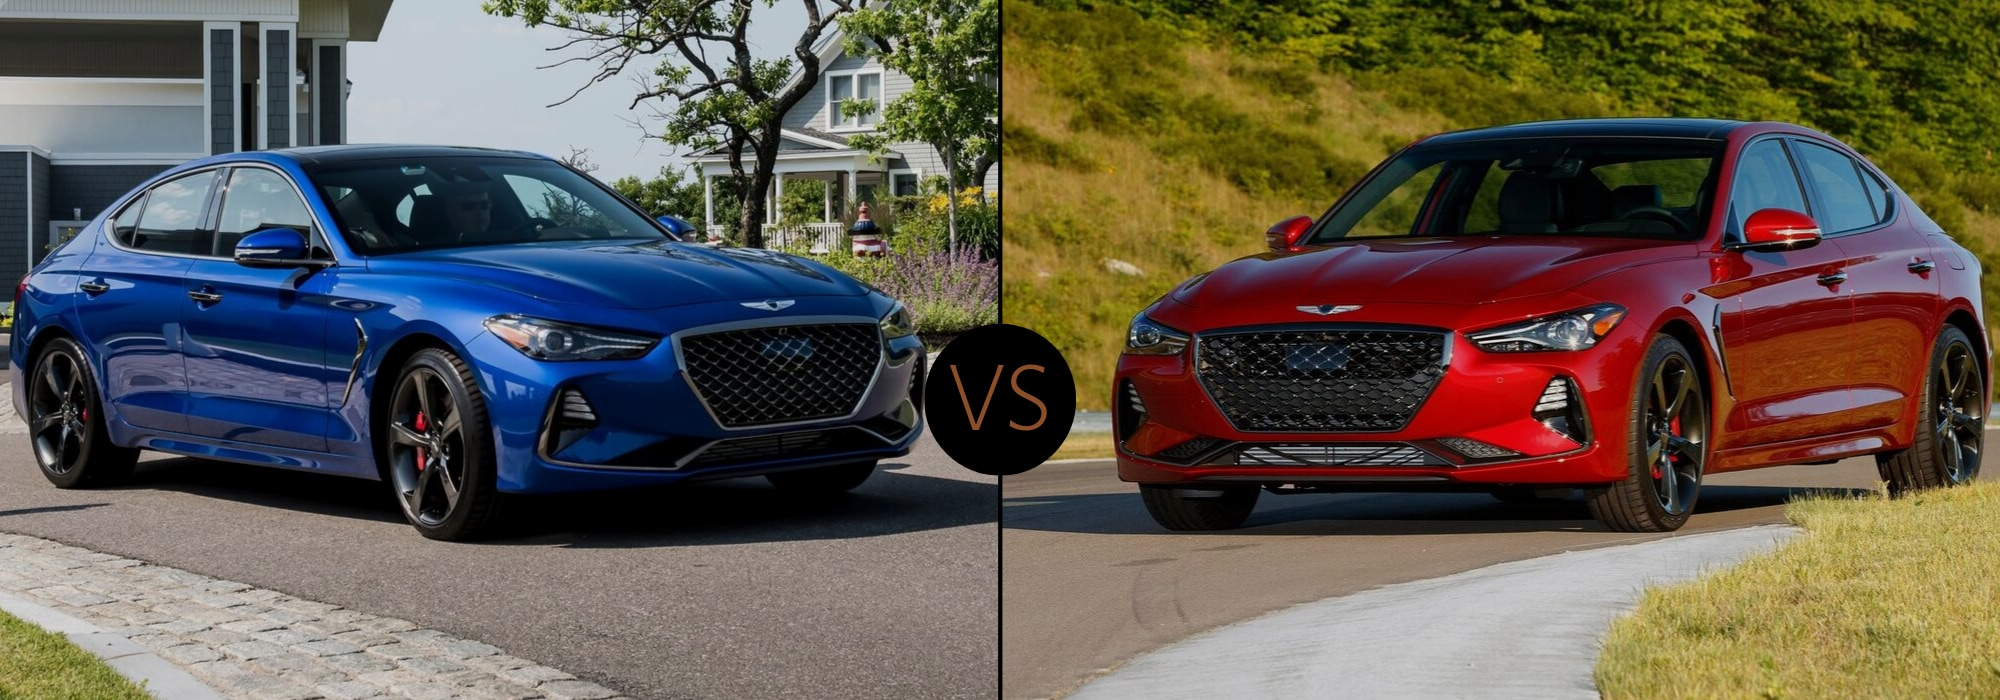 2020 Genesis G70 compared to the 2019 Genesis G70